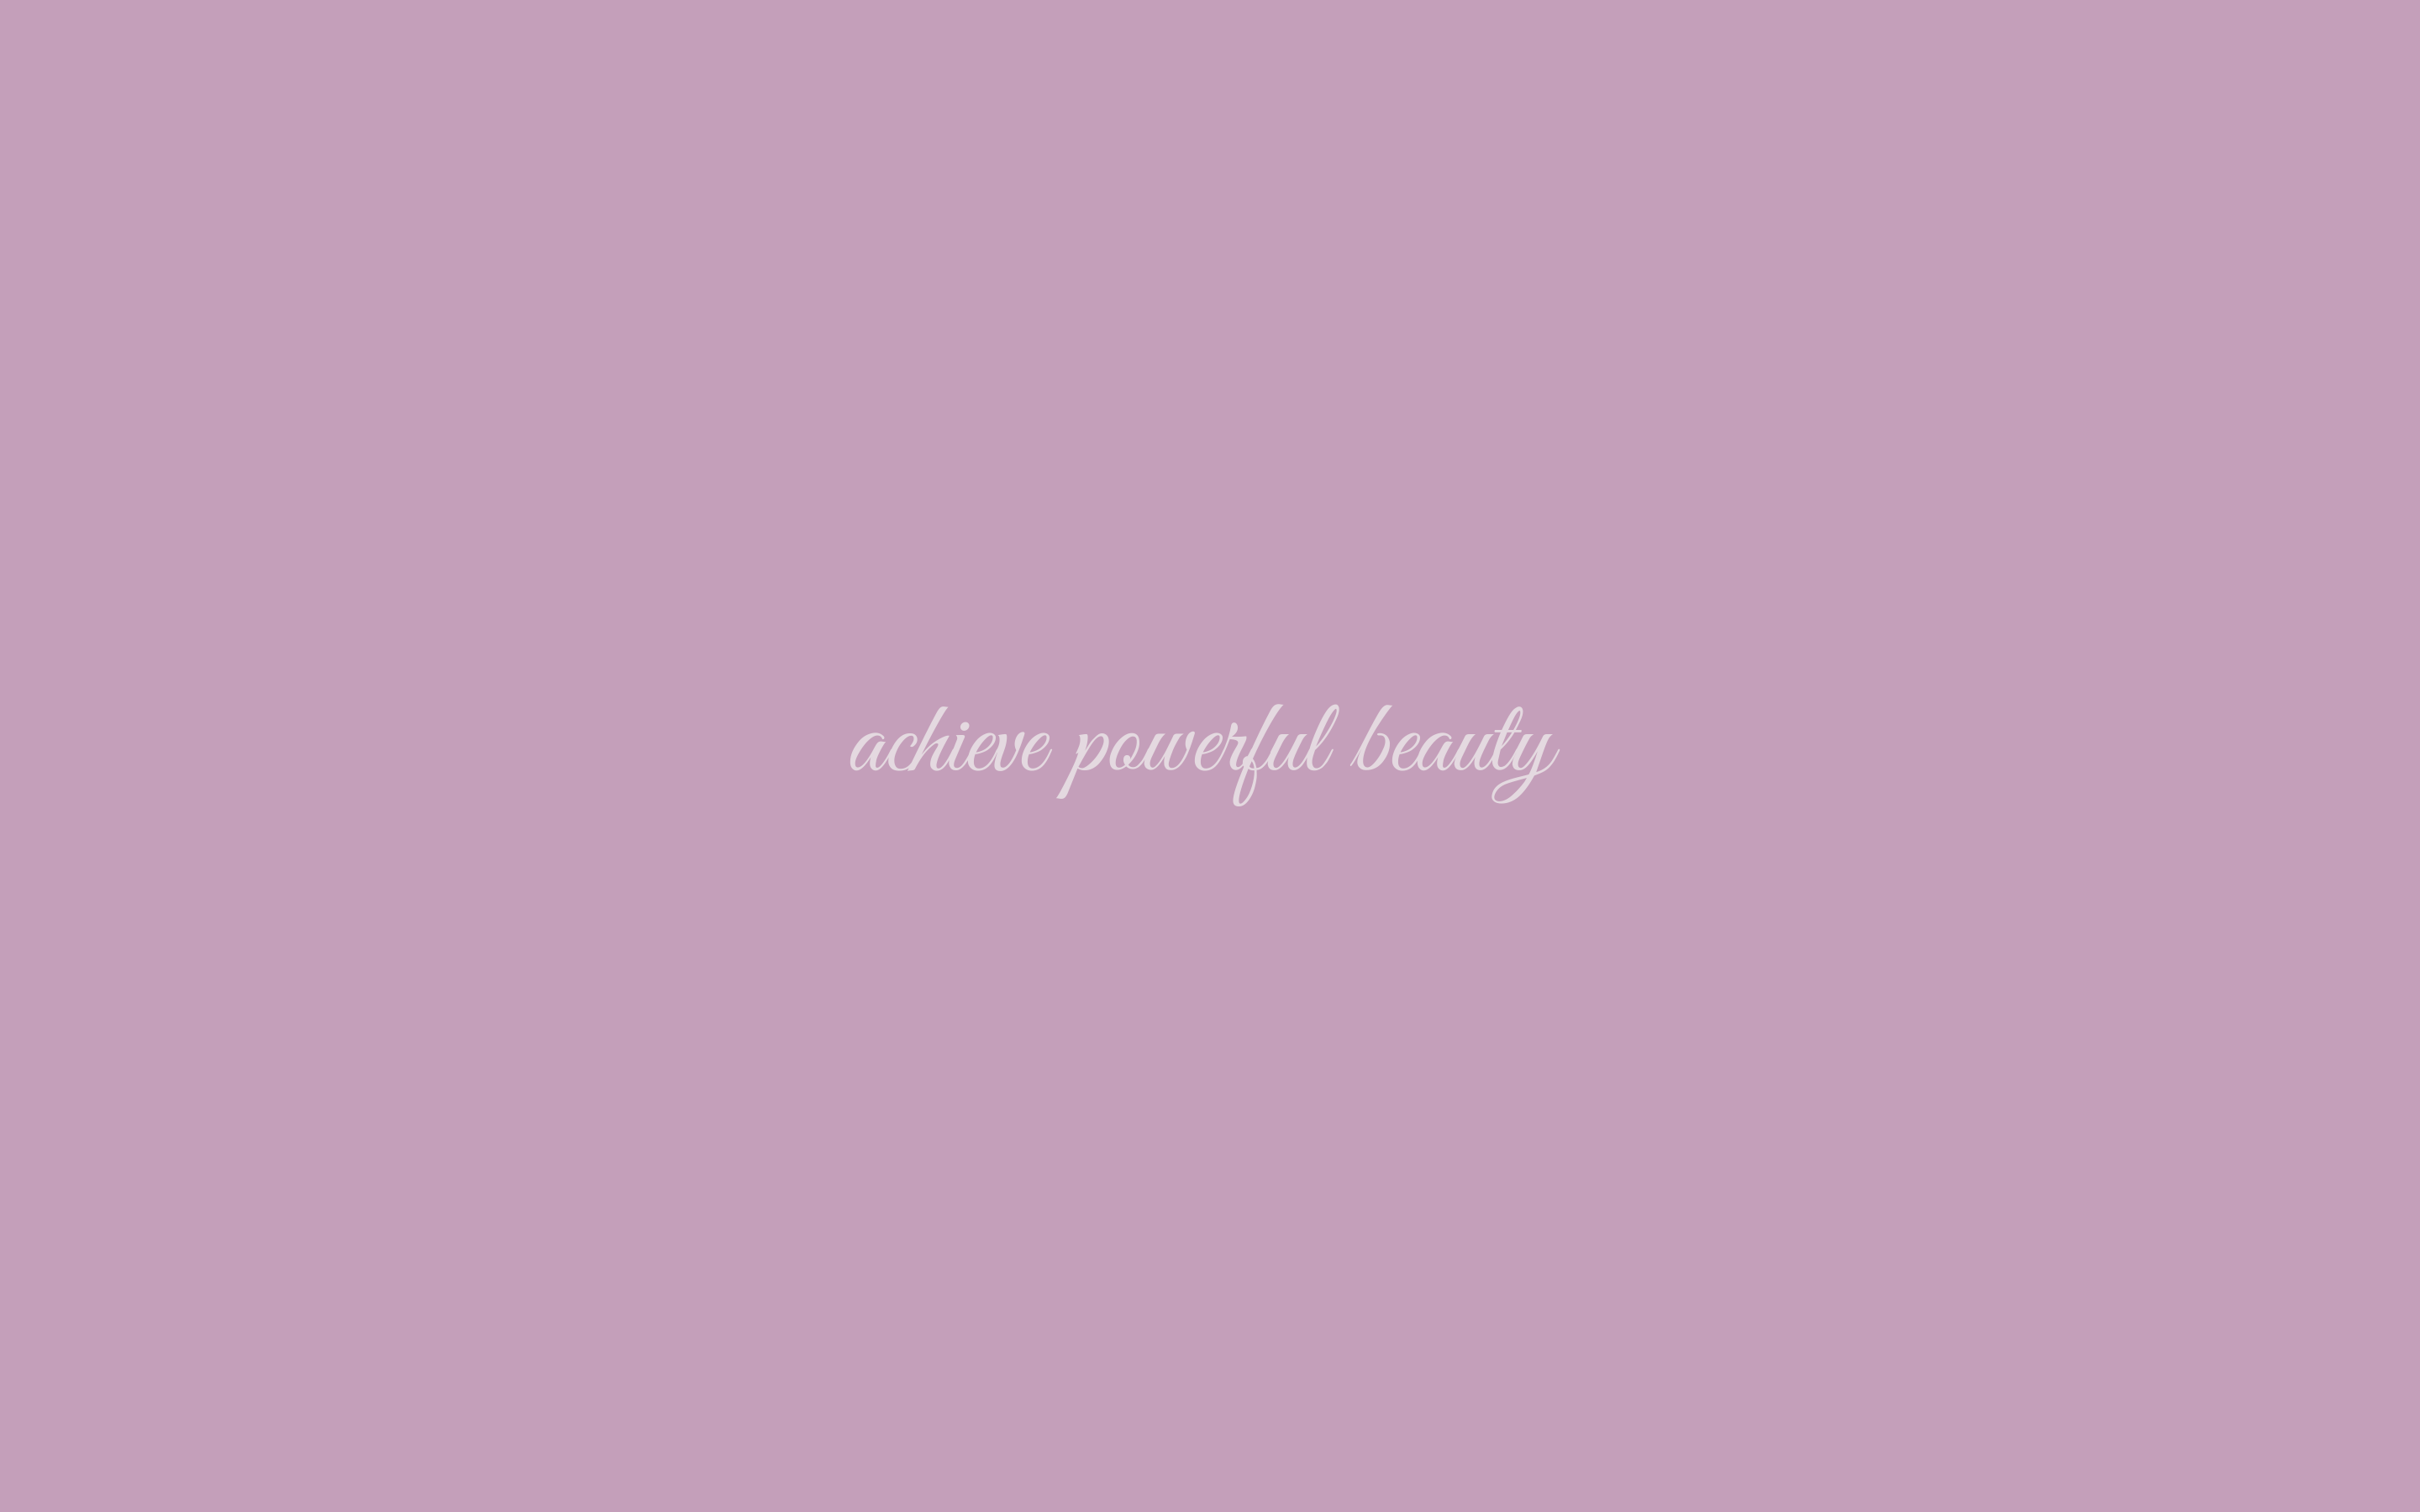 Powerful beauty wallpaper in pantone mauve mist bionic - Colors that go with mauve ...